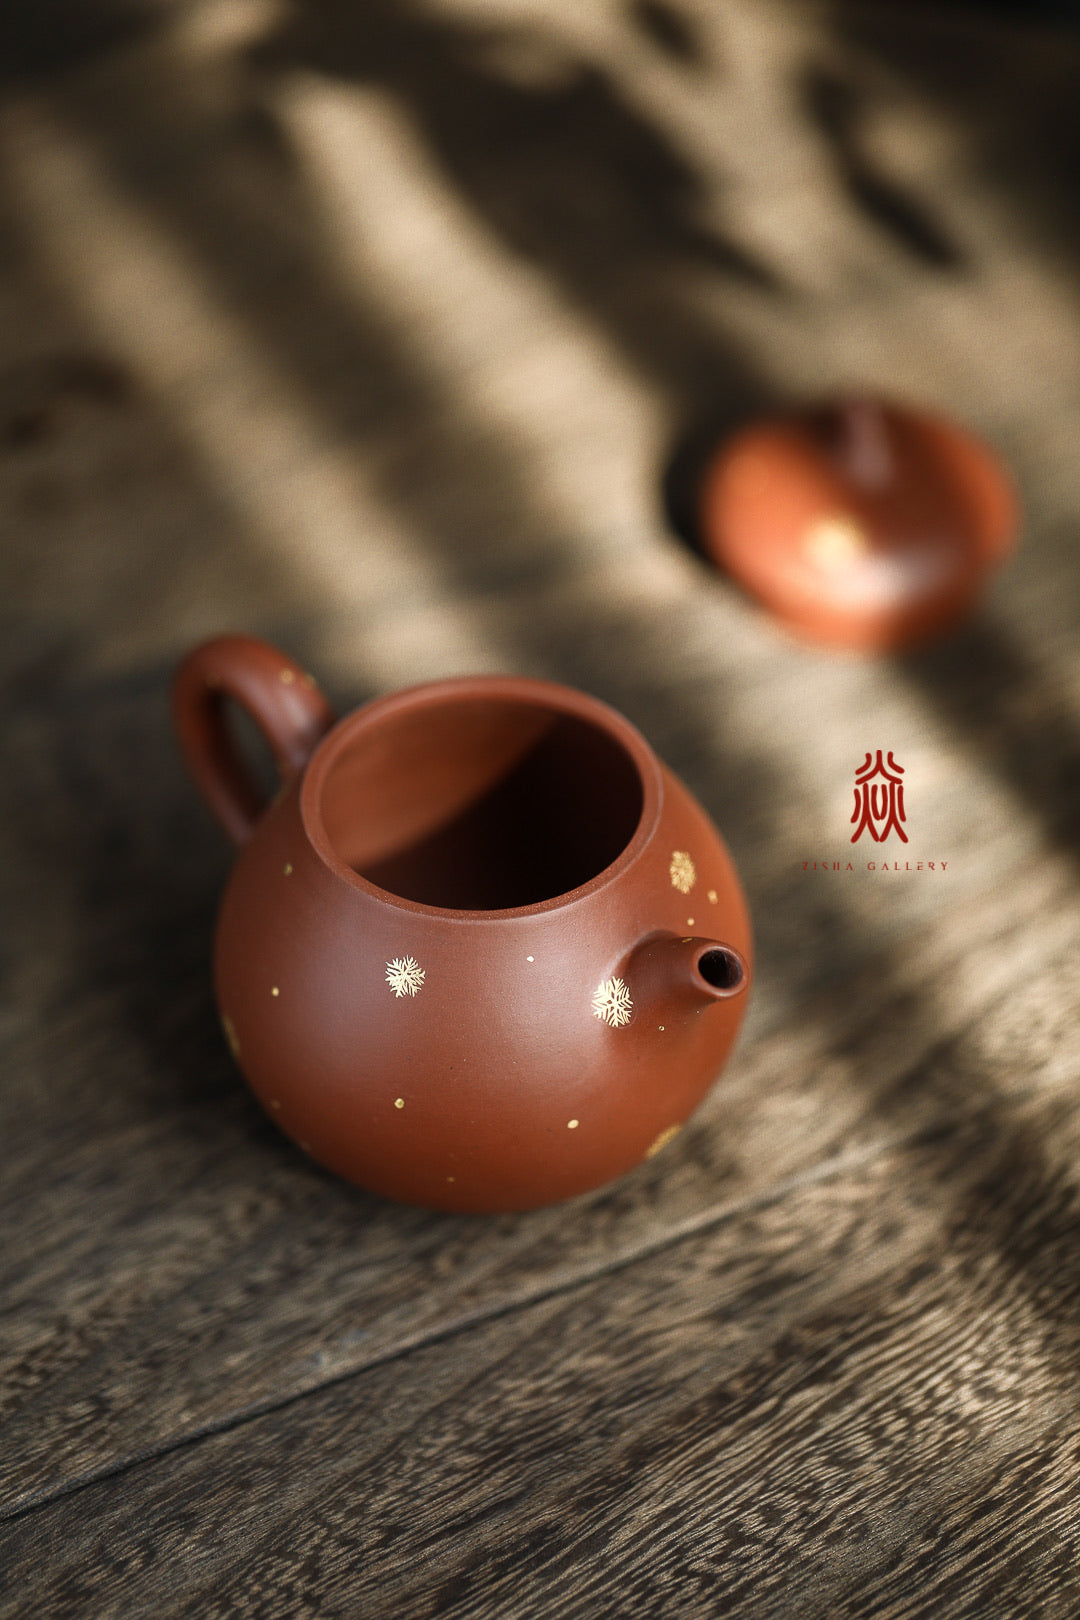 茄段 Qie Duan 150ML Xiao Hong Ni 小红泥 王建芳 Wang Jian Fang - Yann Art Gallery